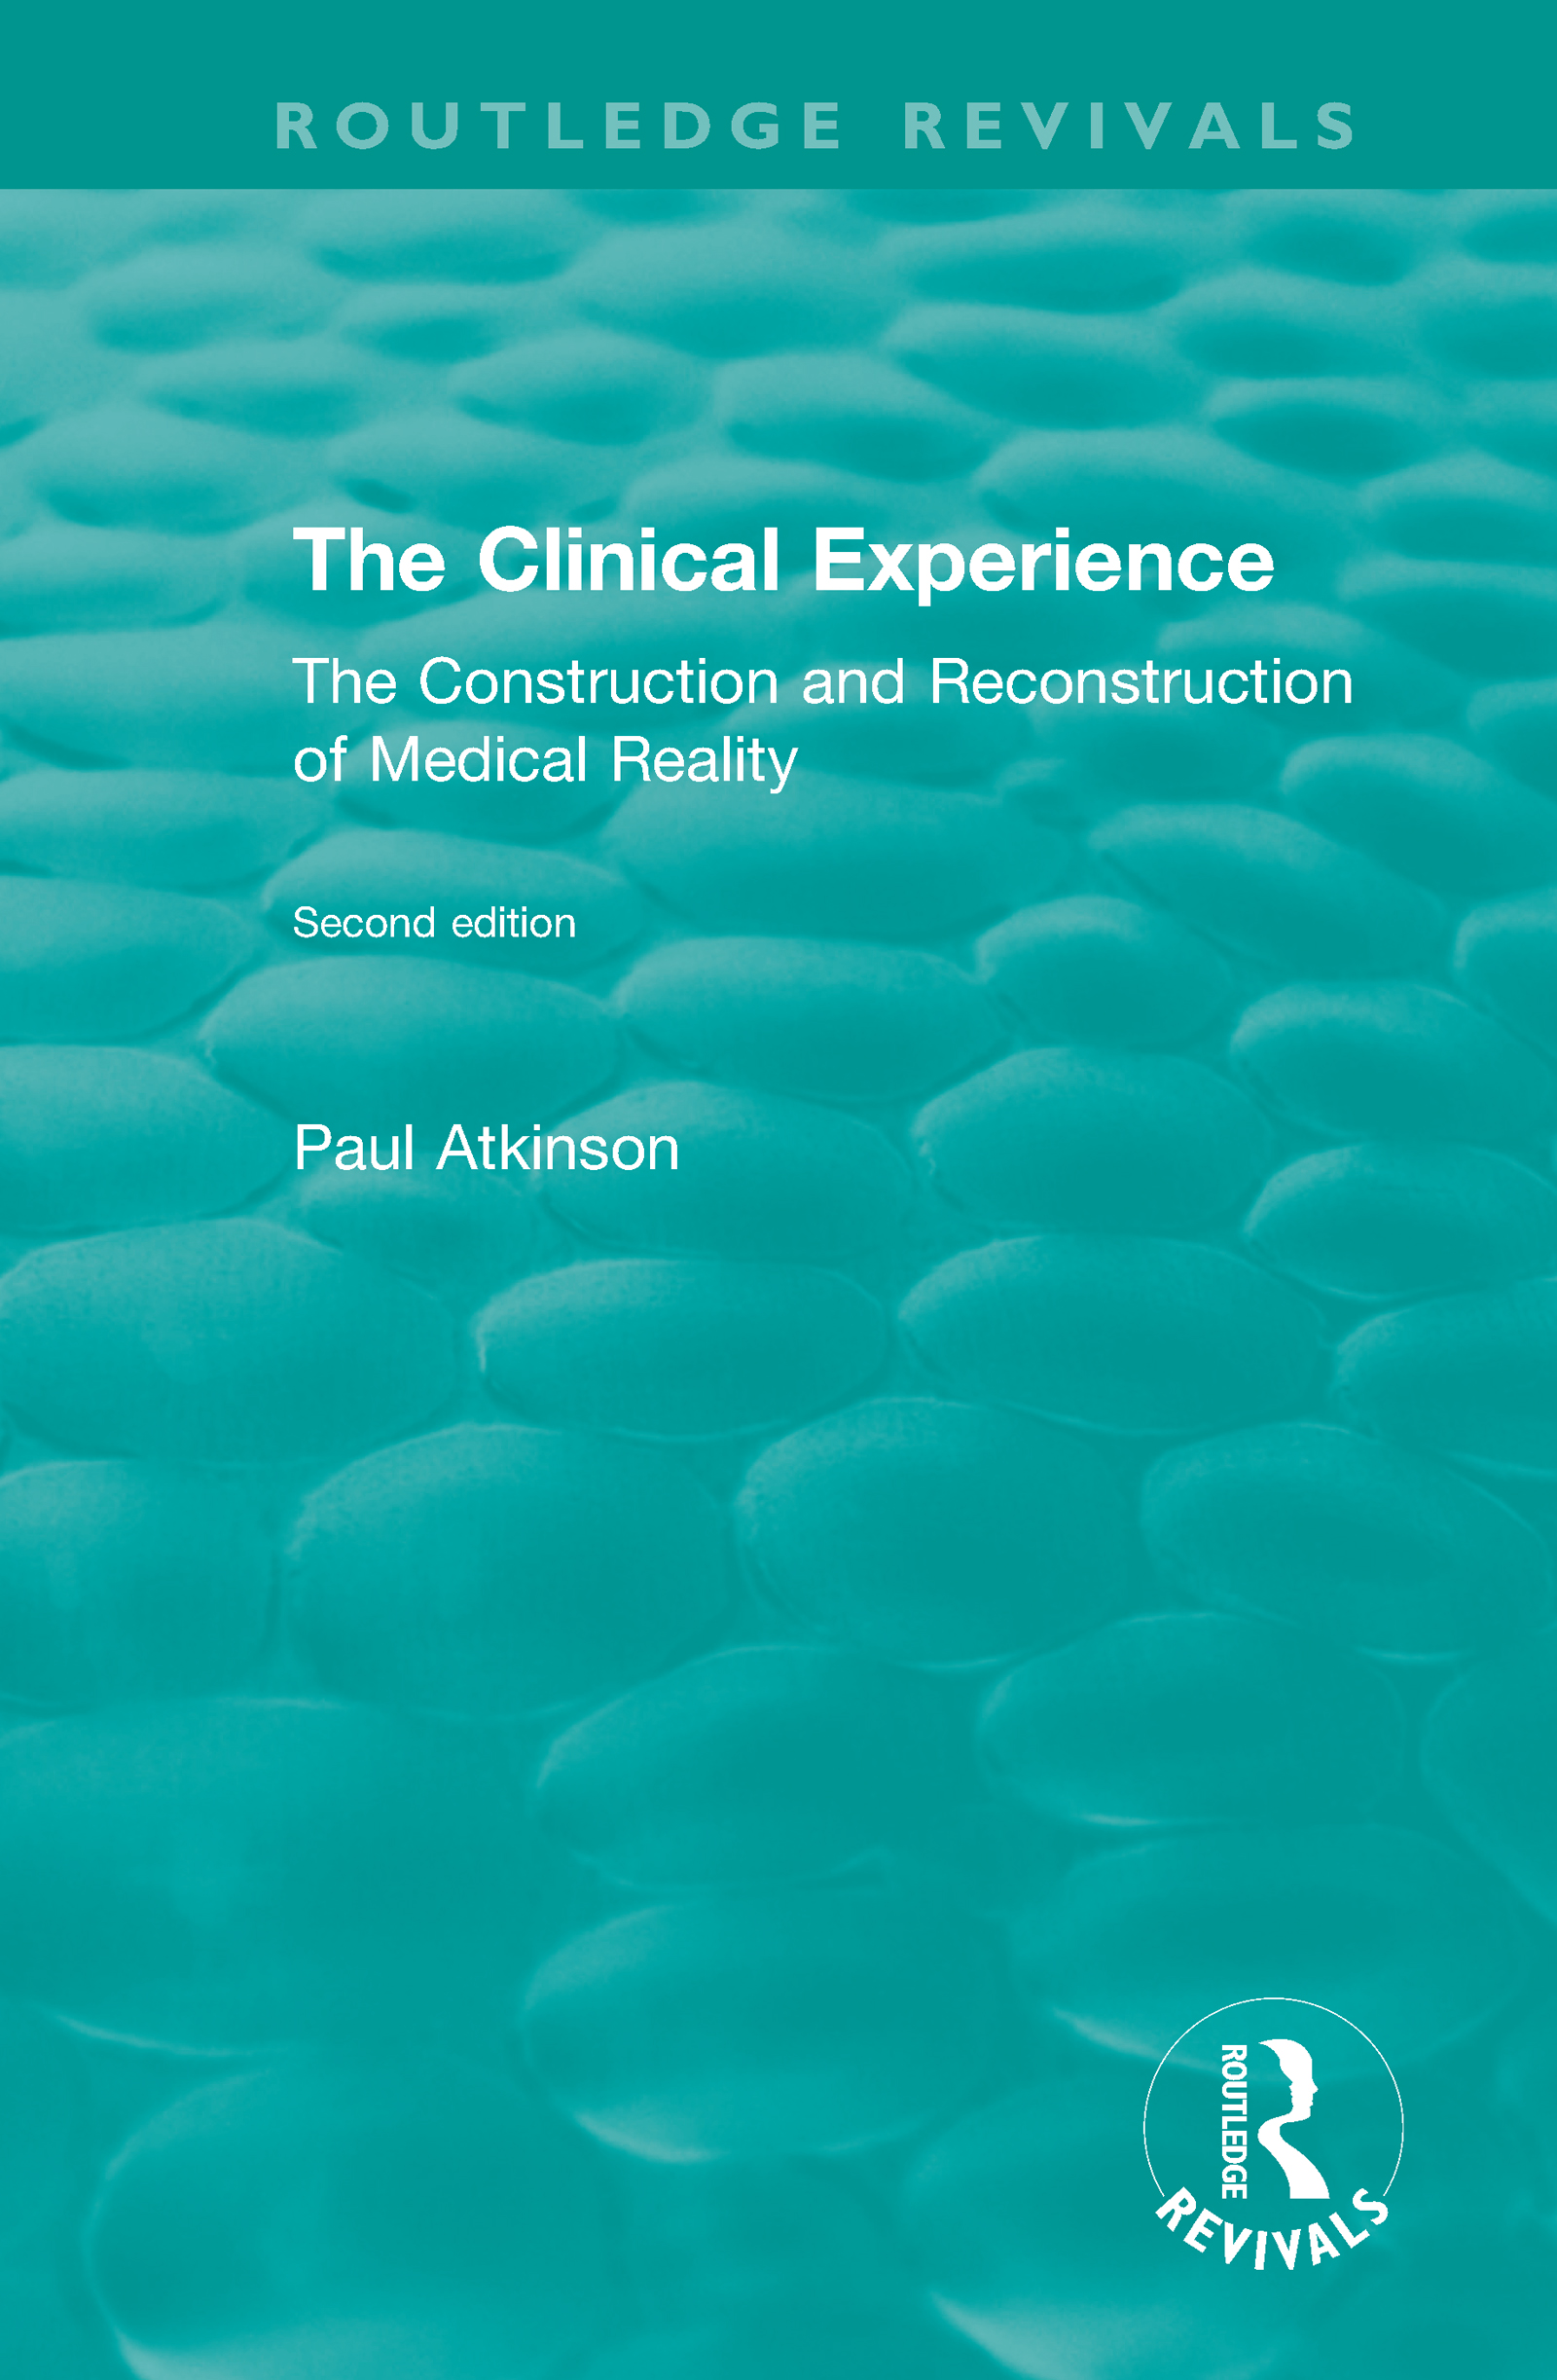 The Clinical Experience, Second edition (1997): The Construction and Reconstrucion of Medical Reality book cover